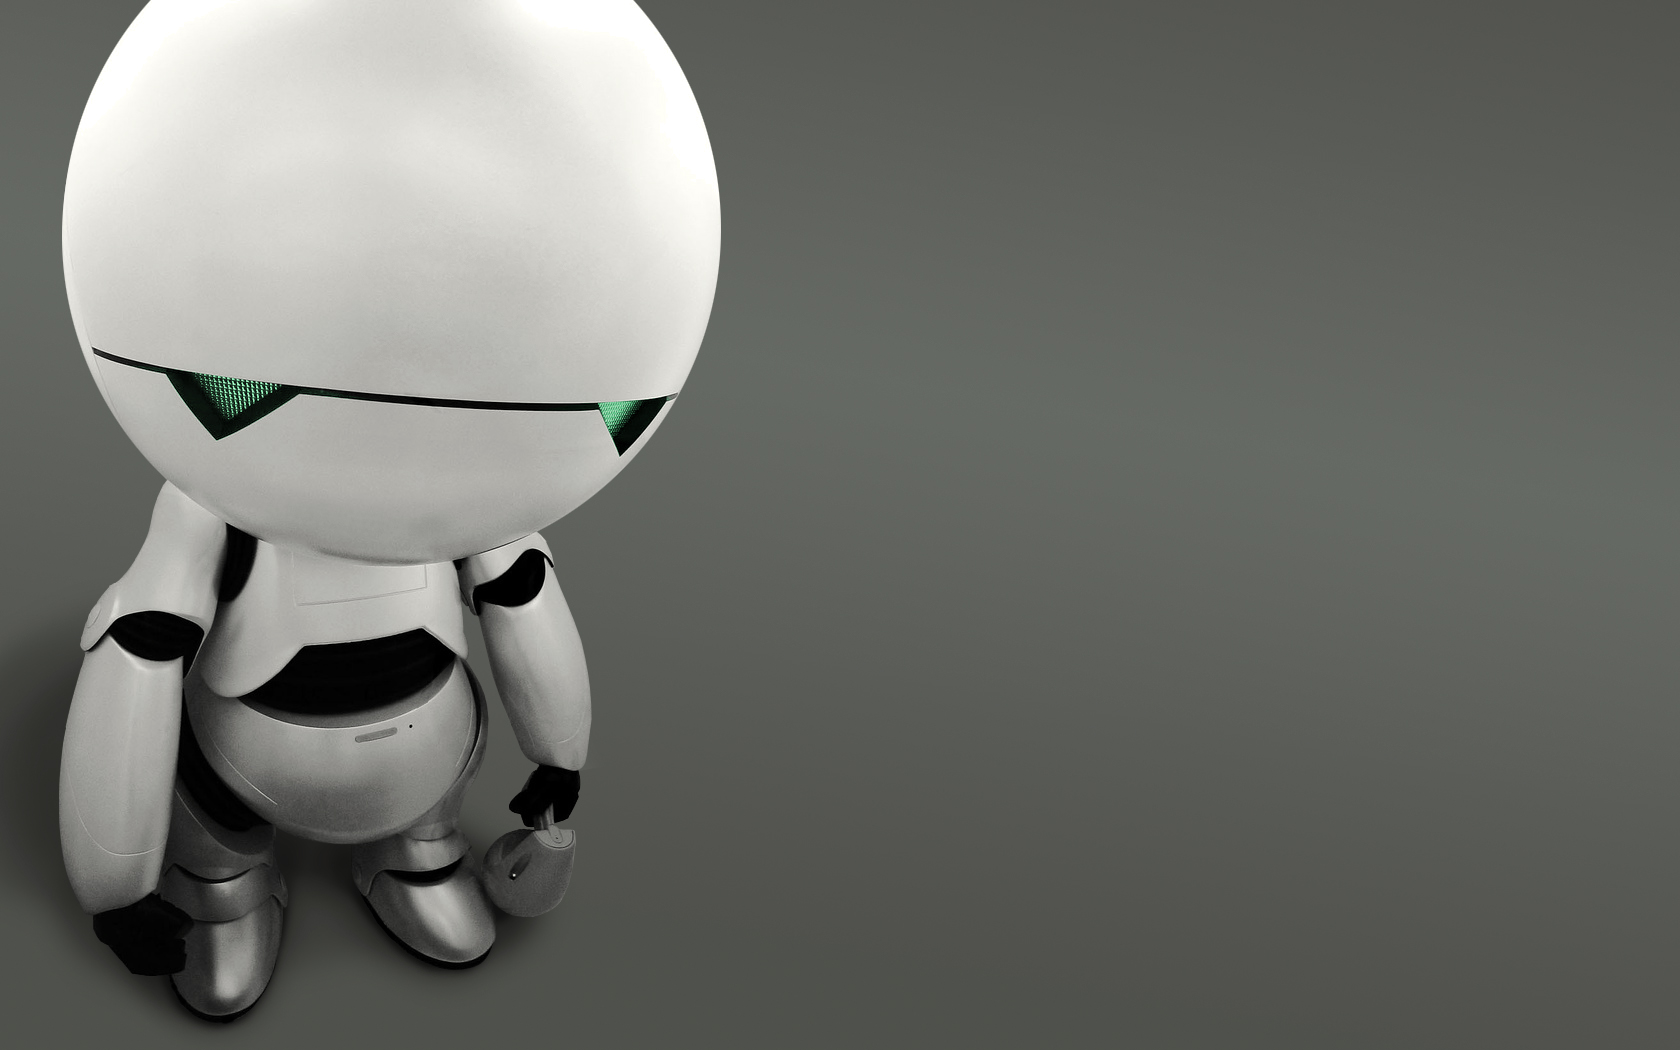 Adorable HDQ Backgrounds of Robot, 1680x1050 px